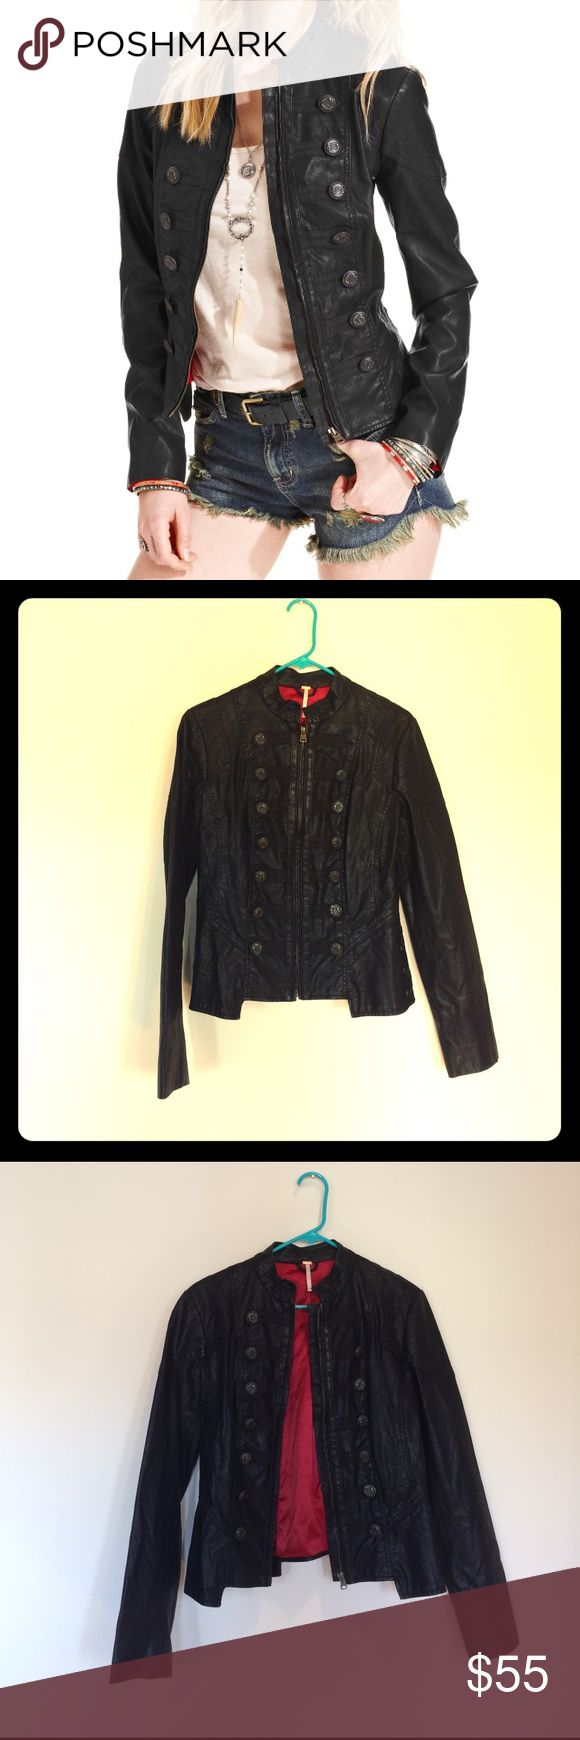 Free People Black Military Jacket. Size 6.? Black military jacket by Free People. Red lining on inside. Lightly worn. Tailored fit. Size 6. Free People Jackets & Coats